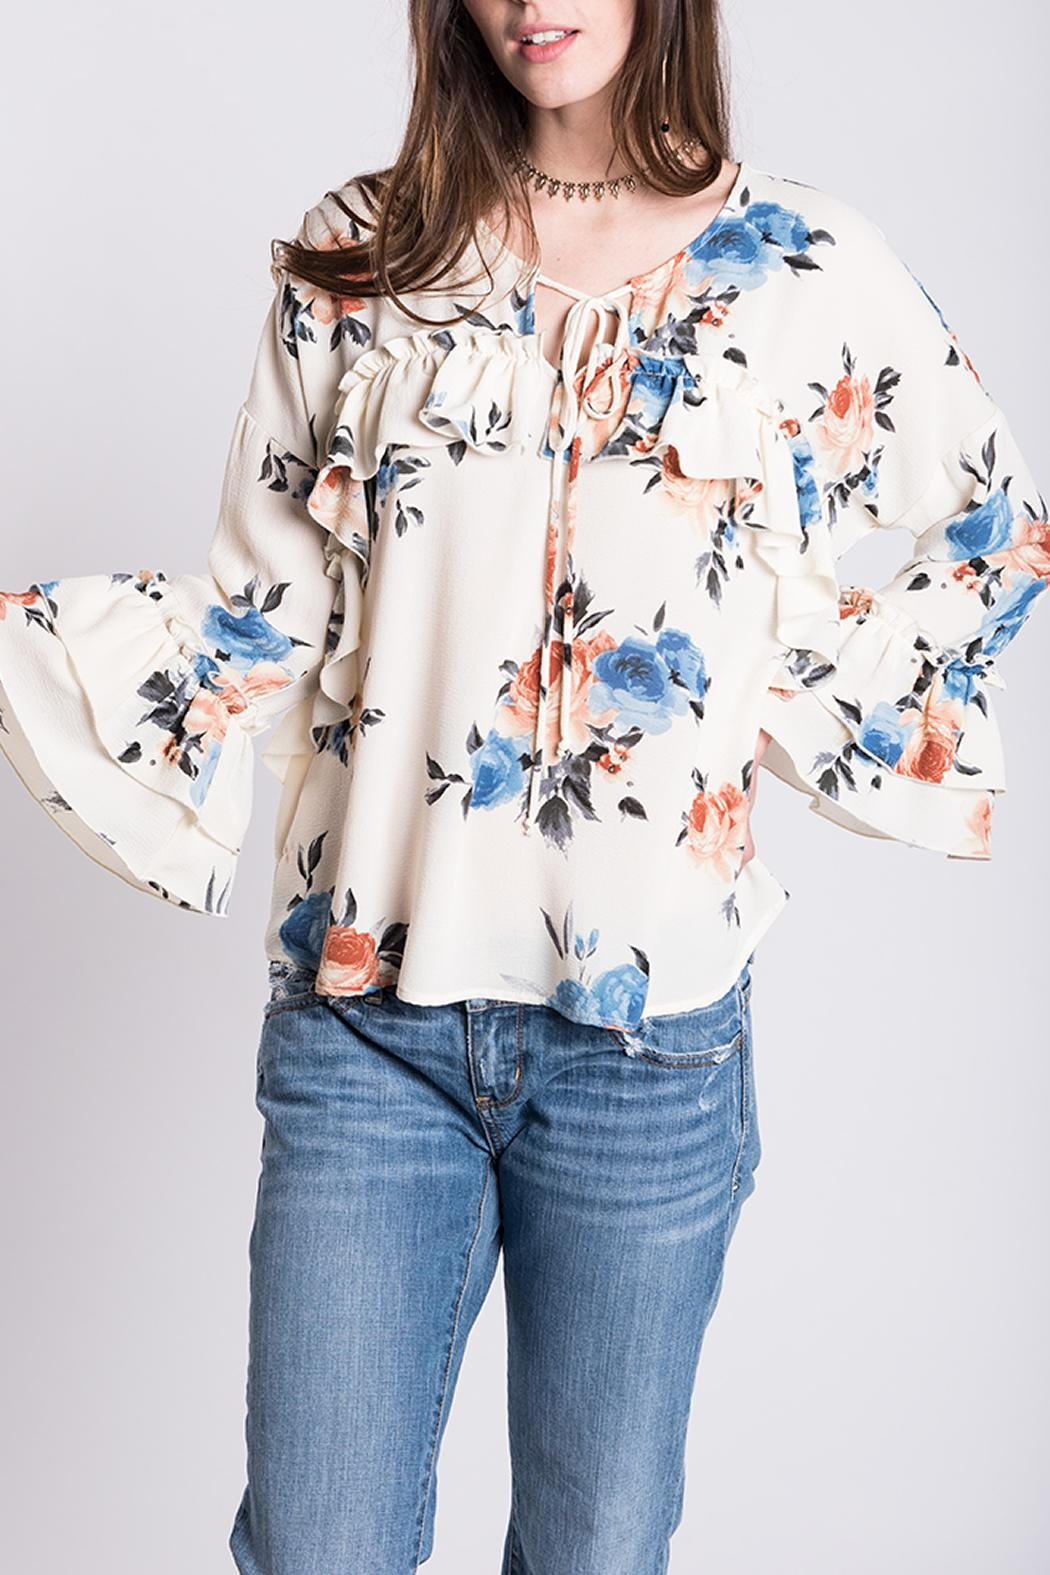 Ivy Jane Ruffle Floral Top - Main Image